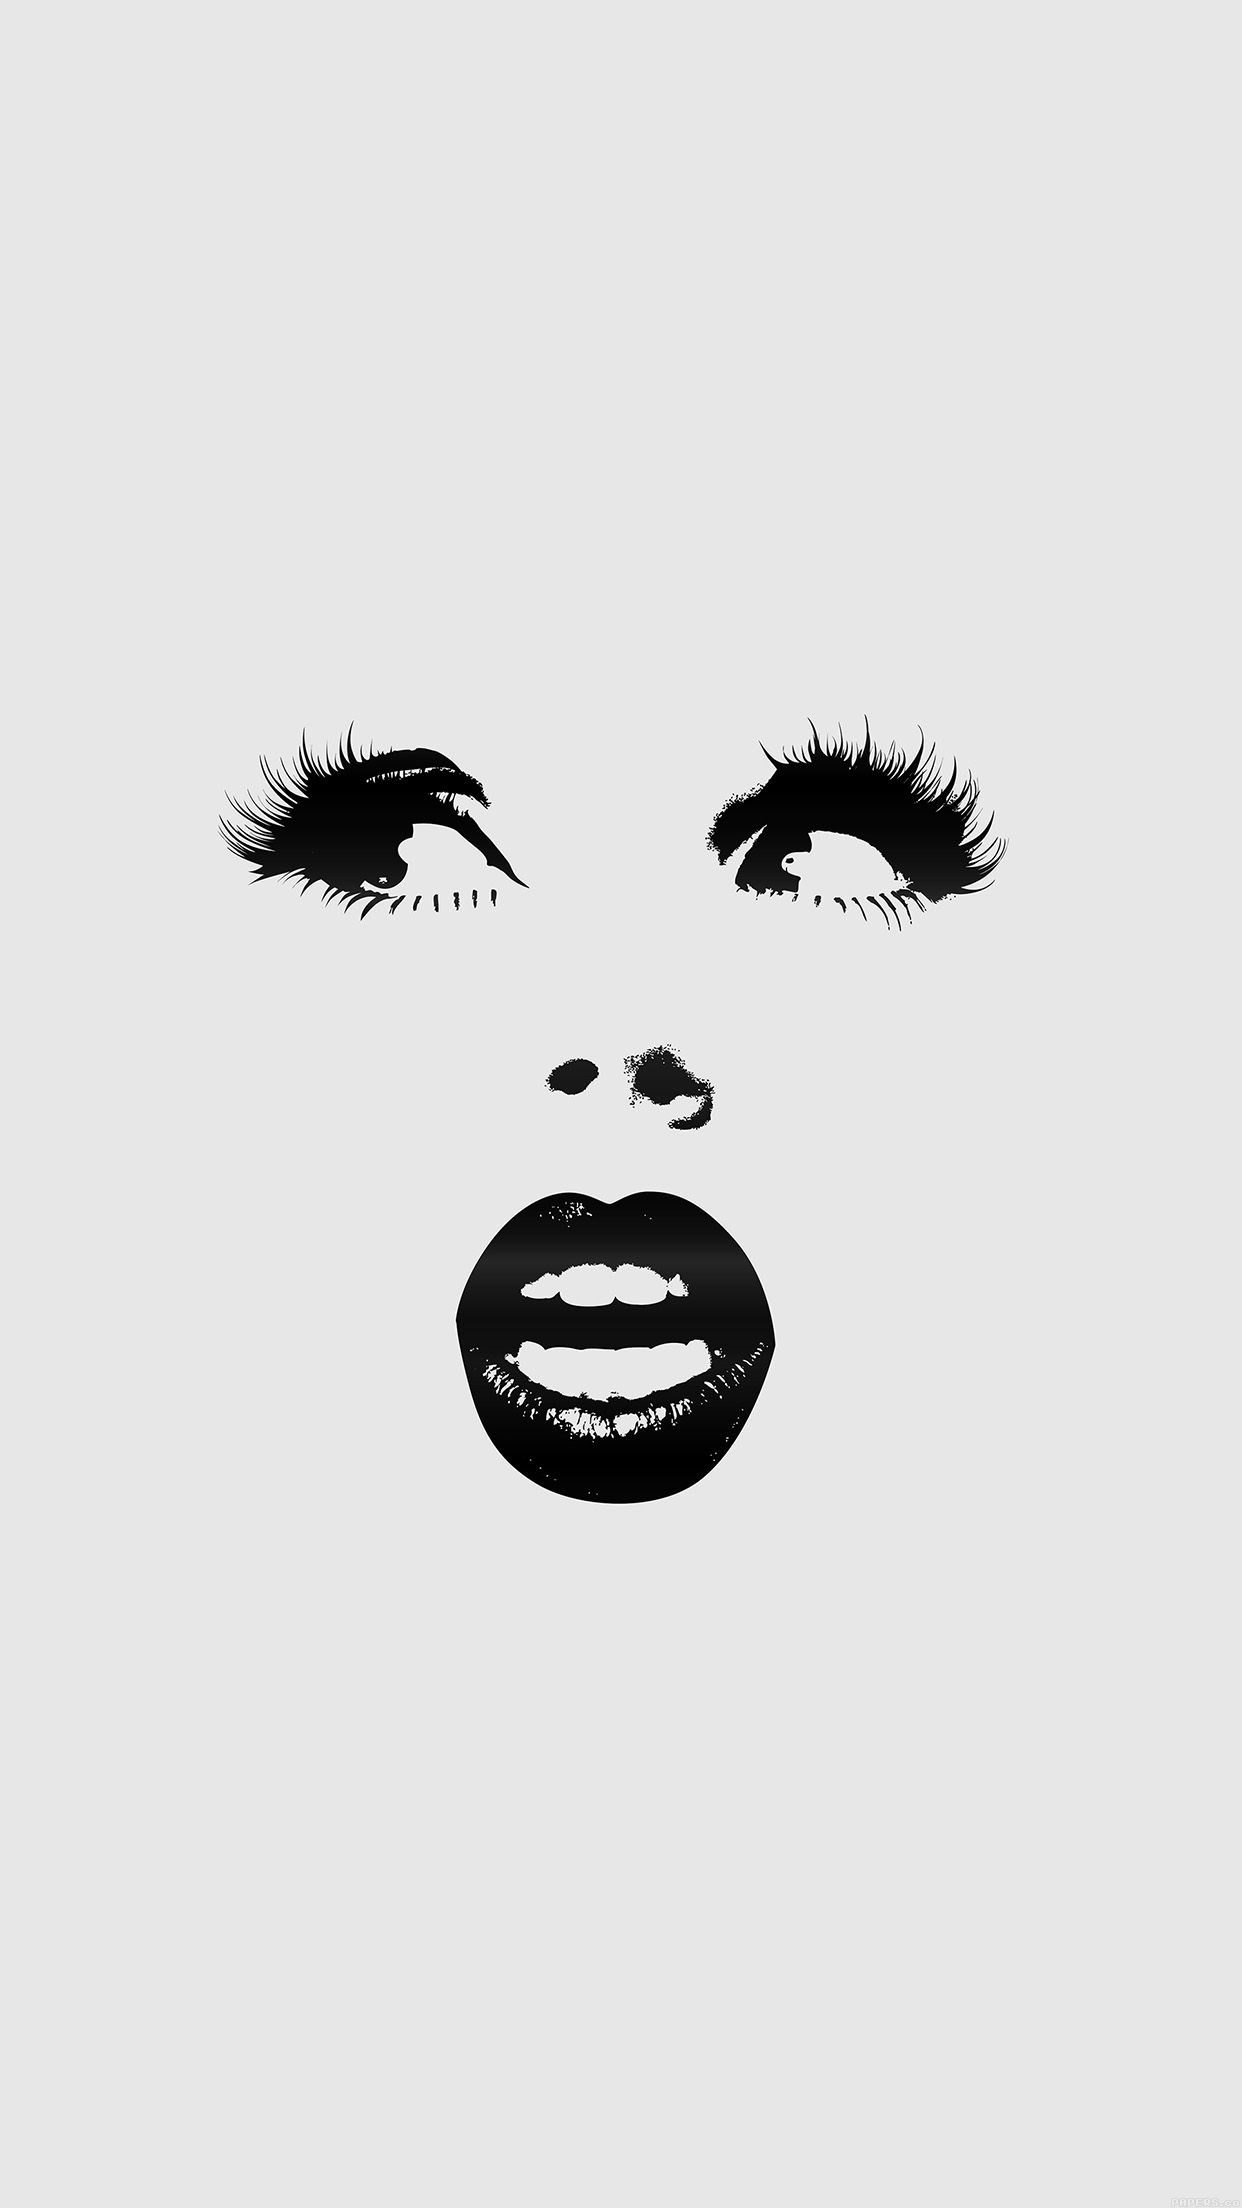 Tap And Get The Free App Girlish Girly Face Lips Eyes Minimalistic Stylish Girl Black And White Hd Iphone 6 Plus Wallpa Iphone Wallpaper Art Cute Wallpapers